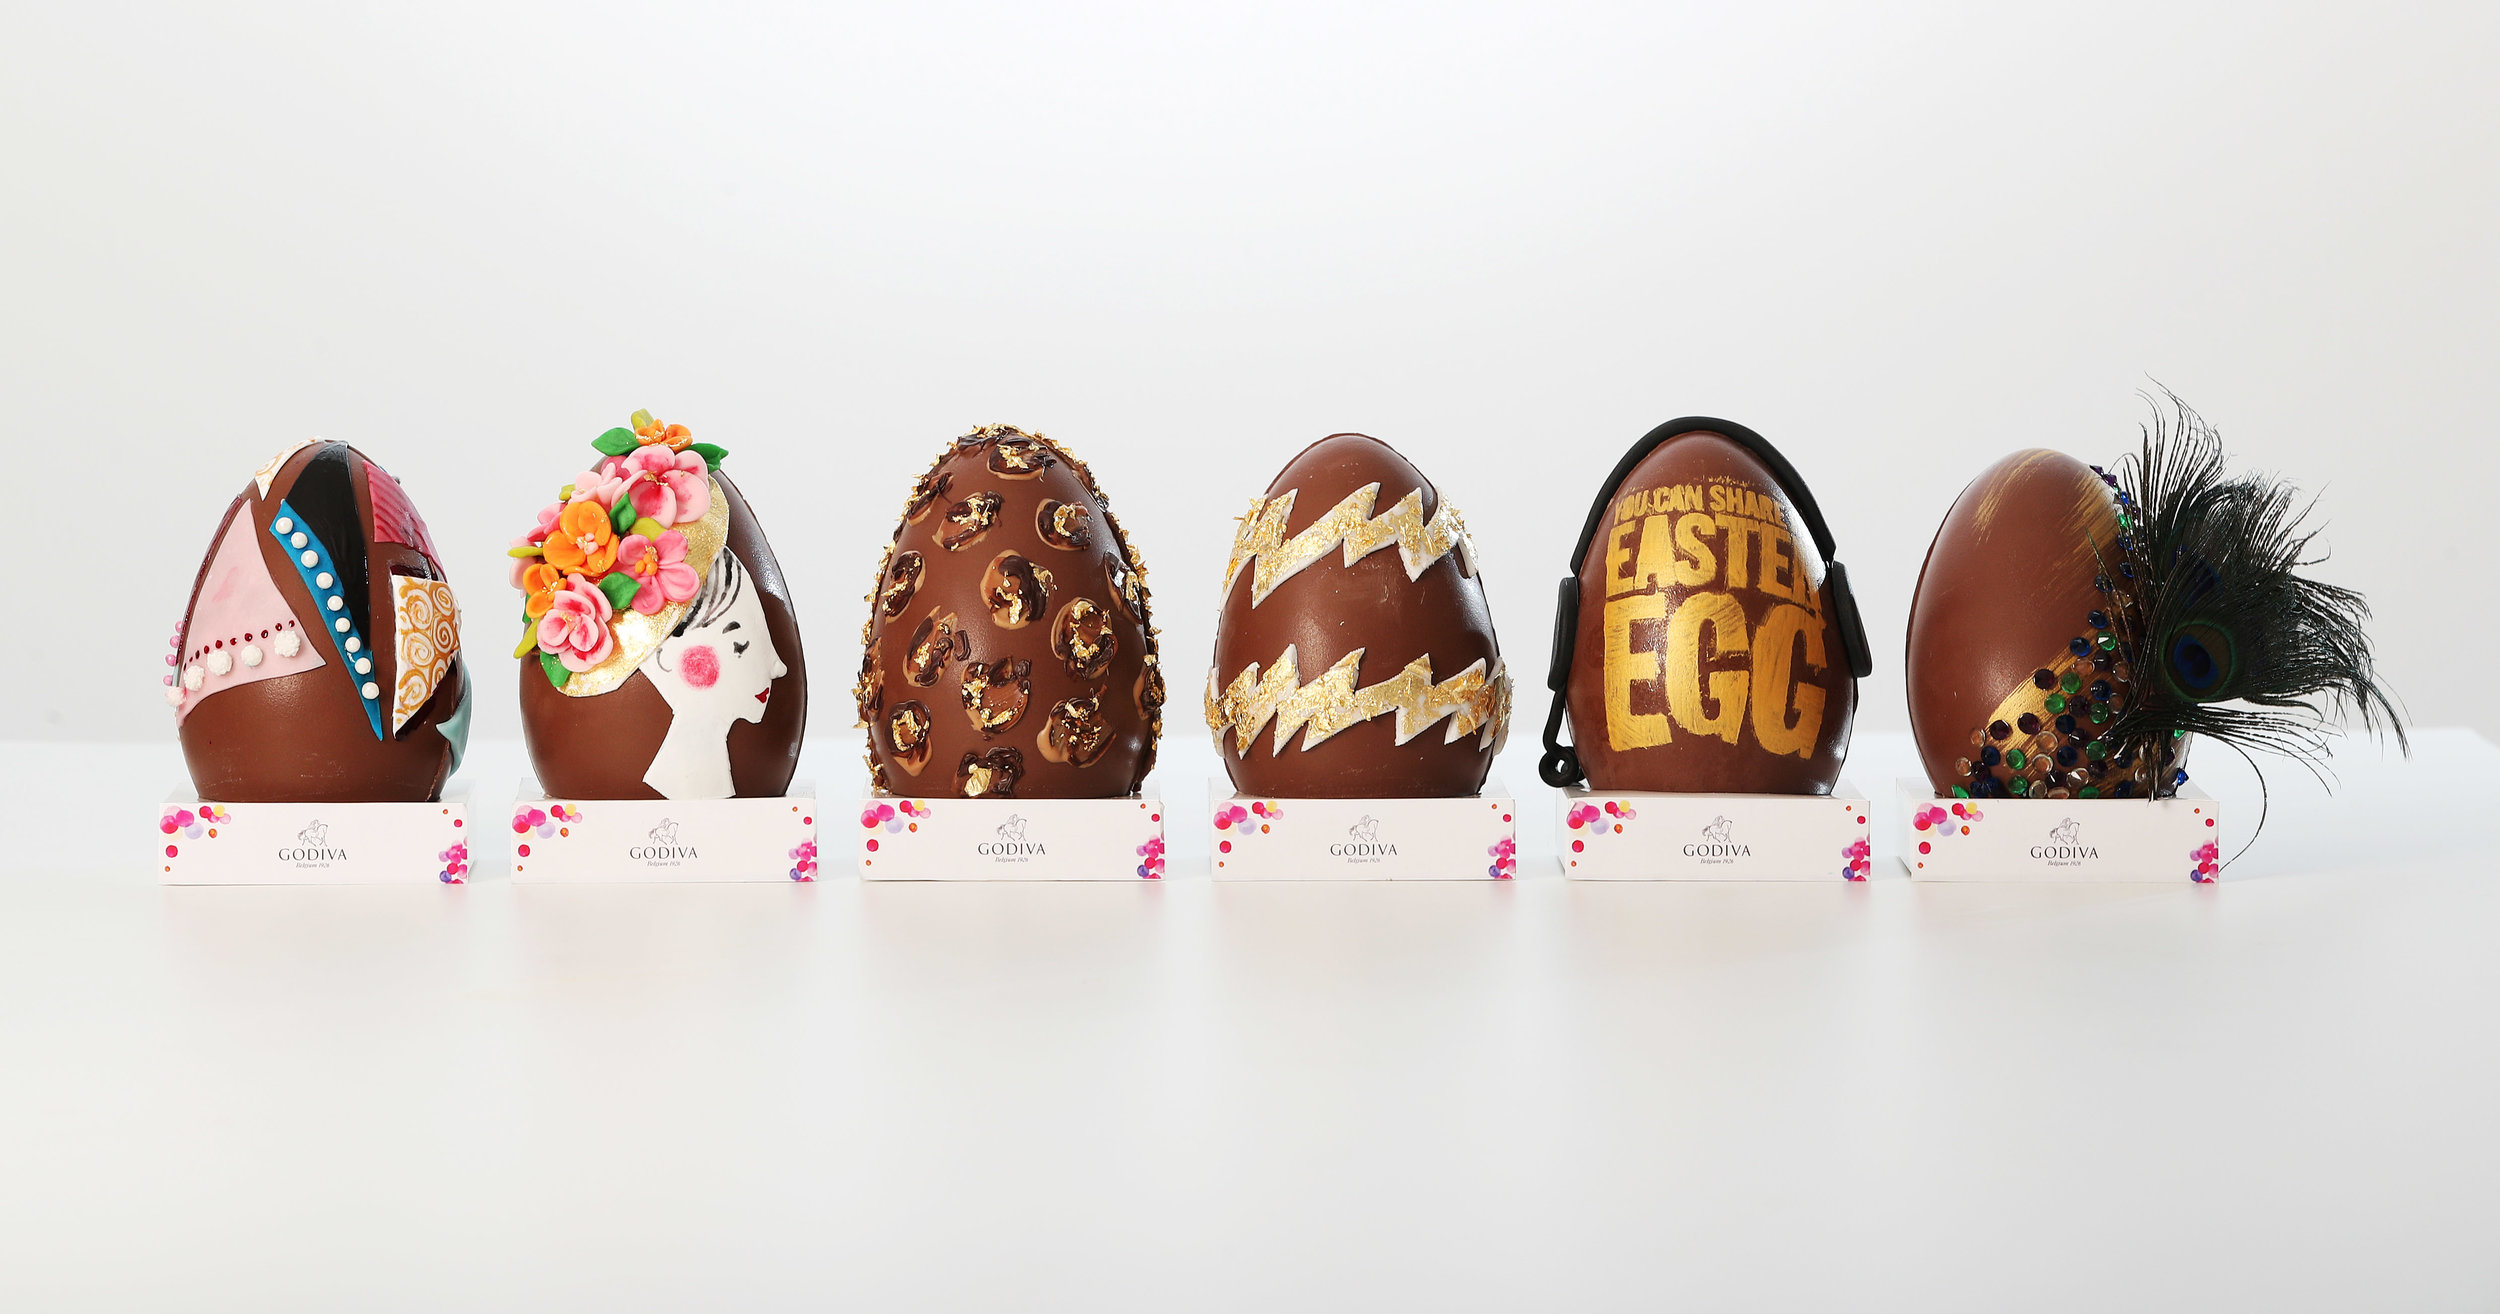 The completed eggs decorated by Godiva's creative influencers.  Left to right; Sophie Tea, Emma Block, Gizzi Erskine, Rosie Fortescue, Henry Holland and Candice Brown